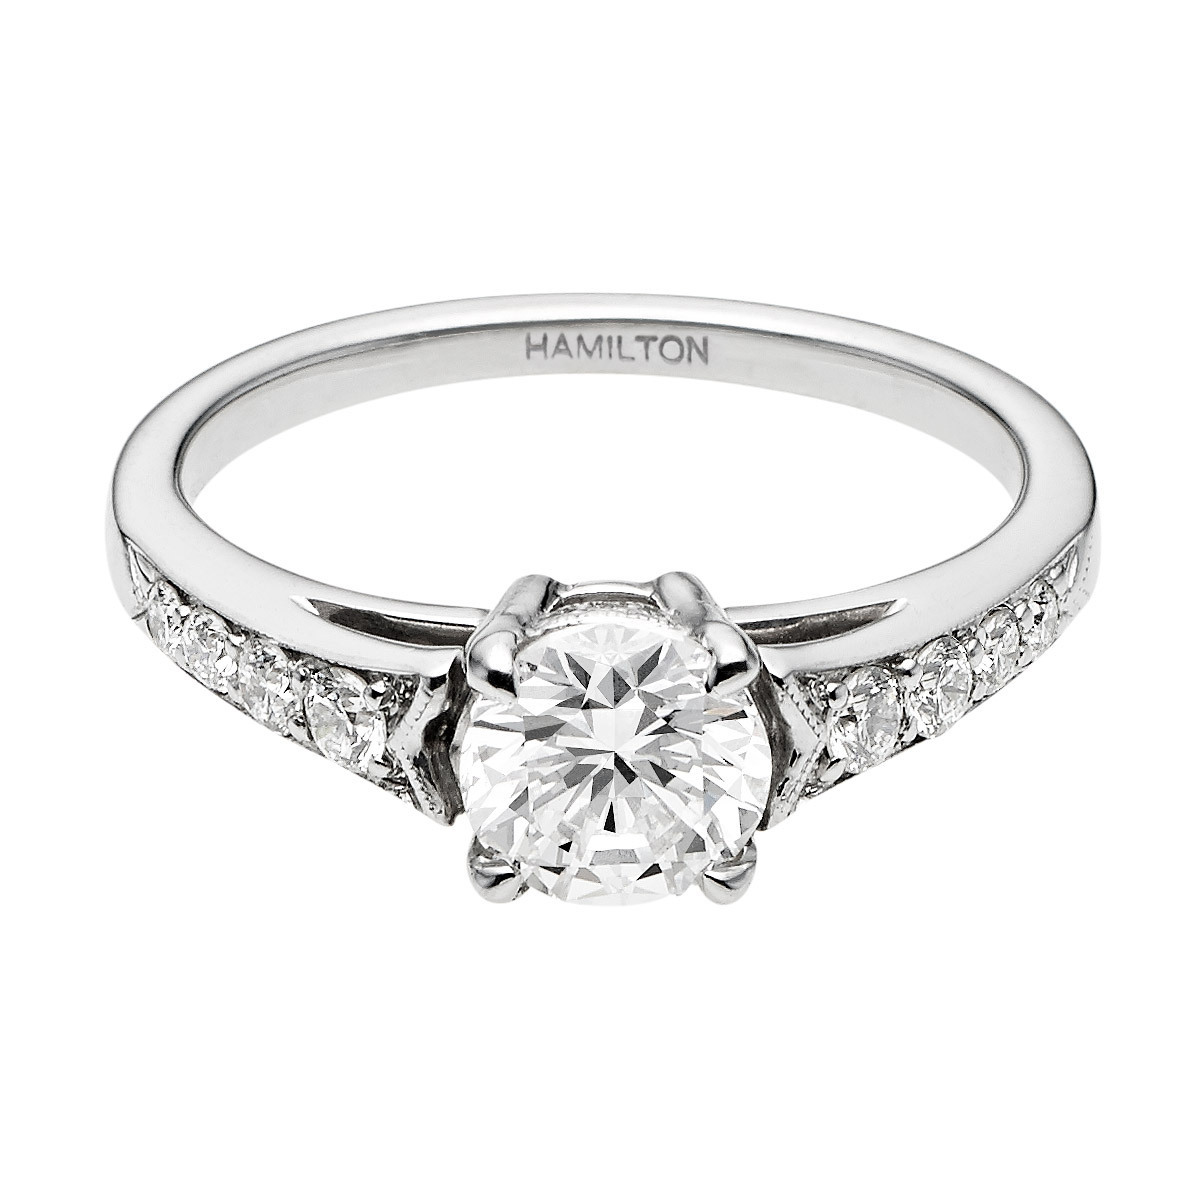 Ring Builder And Diamond Search: Were Find Wedding Rings At Websimilar.org